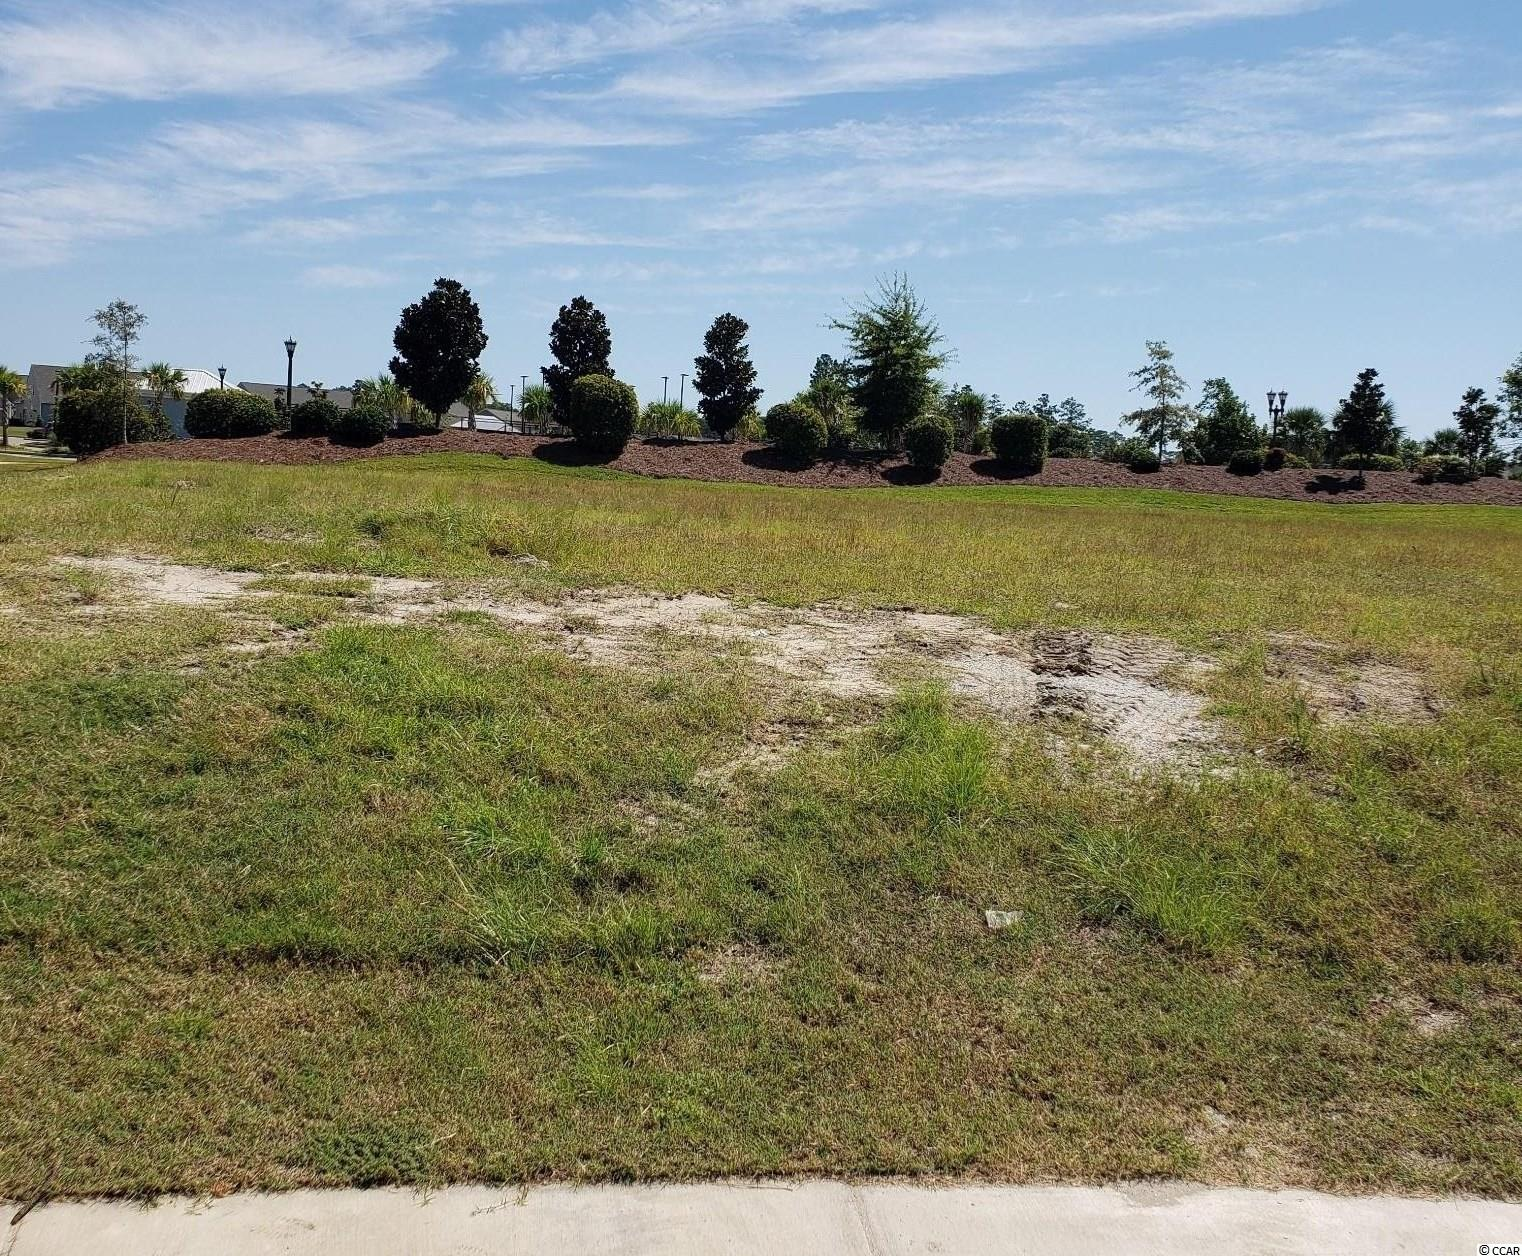 This is the last available large homesite in Waterside Pointe. Excellent location and just a short walk to the Del Webb clubhouse. The gated entrance and access to private day docks on the Waterway for your watercraft make this custom home section unique in the Myrtle Beach market. This lot is cleared and ready for construction. Access to the best Del Webb has to offer in amenities along with the Grande Dunes Ocean Club await. Walking trails, biking, boating and Marina, two 18 hole golf course, dining, shopping and a beautiful stretch of the Atlantic Ocean are available to enhance your lifestyle. This property is located in South Carolina's premier coastal community in Myrtle Beach; Grande Dunes.  Stretching from the Ocean to the Carolina Bays Preserve, this 2200 acre development is amenity-rich and filled with lifestyle opportunities unrivaled in the market.  Owners at Grande Dunes enjoy a 25,000 square foot Ocean Club that boasts exquisite dining, oceanfront pools with food & beverage service, along with meeting rooms and fun activities.  Additionally, the community has two 18-hole golf courses along with several on-site restaurants, deep water marina, Har-tru tennis facility and miles or biking/walking trails!  Please visit our sales gallery located in Grande Dunes Marketplace to learn more about this amazing community you can call home.